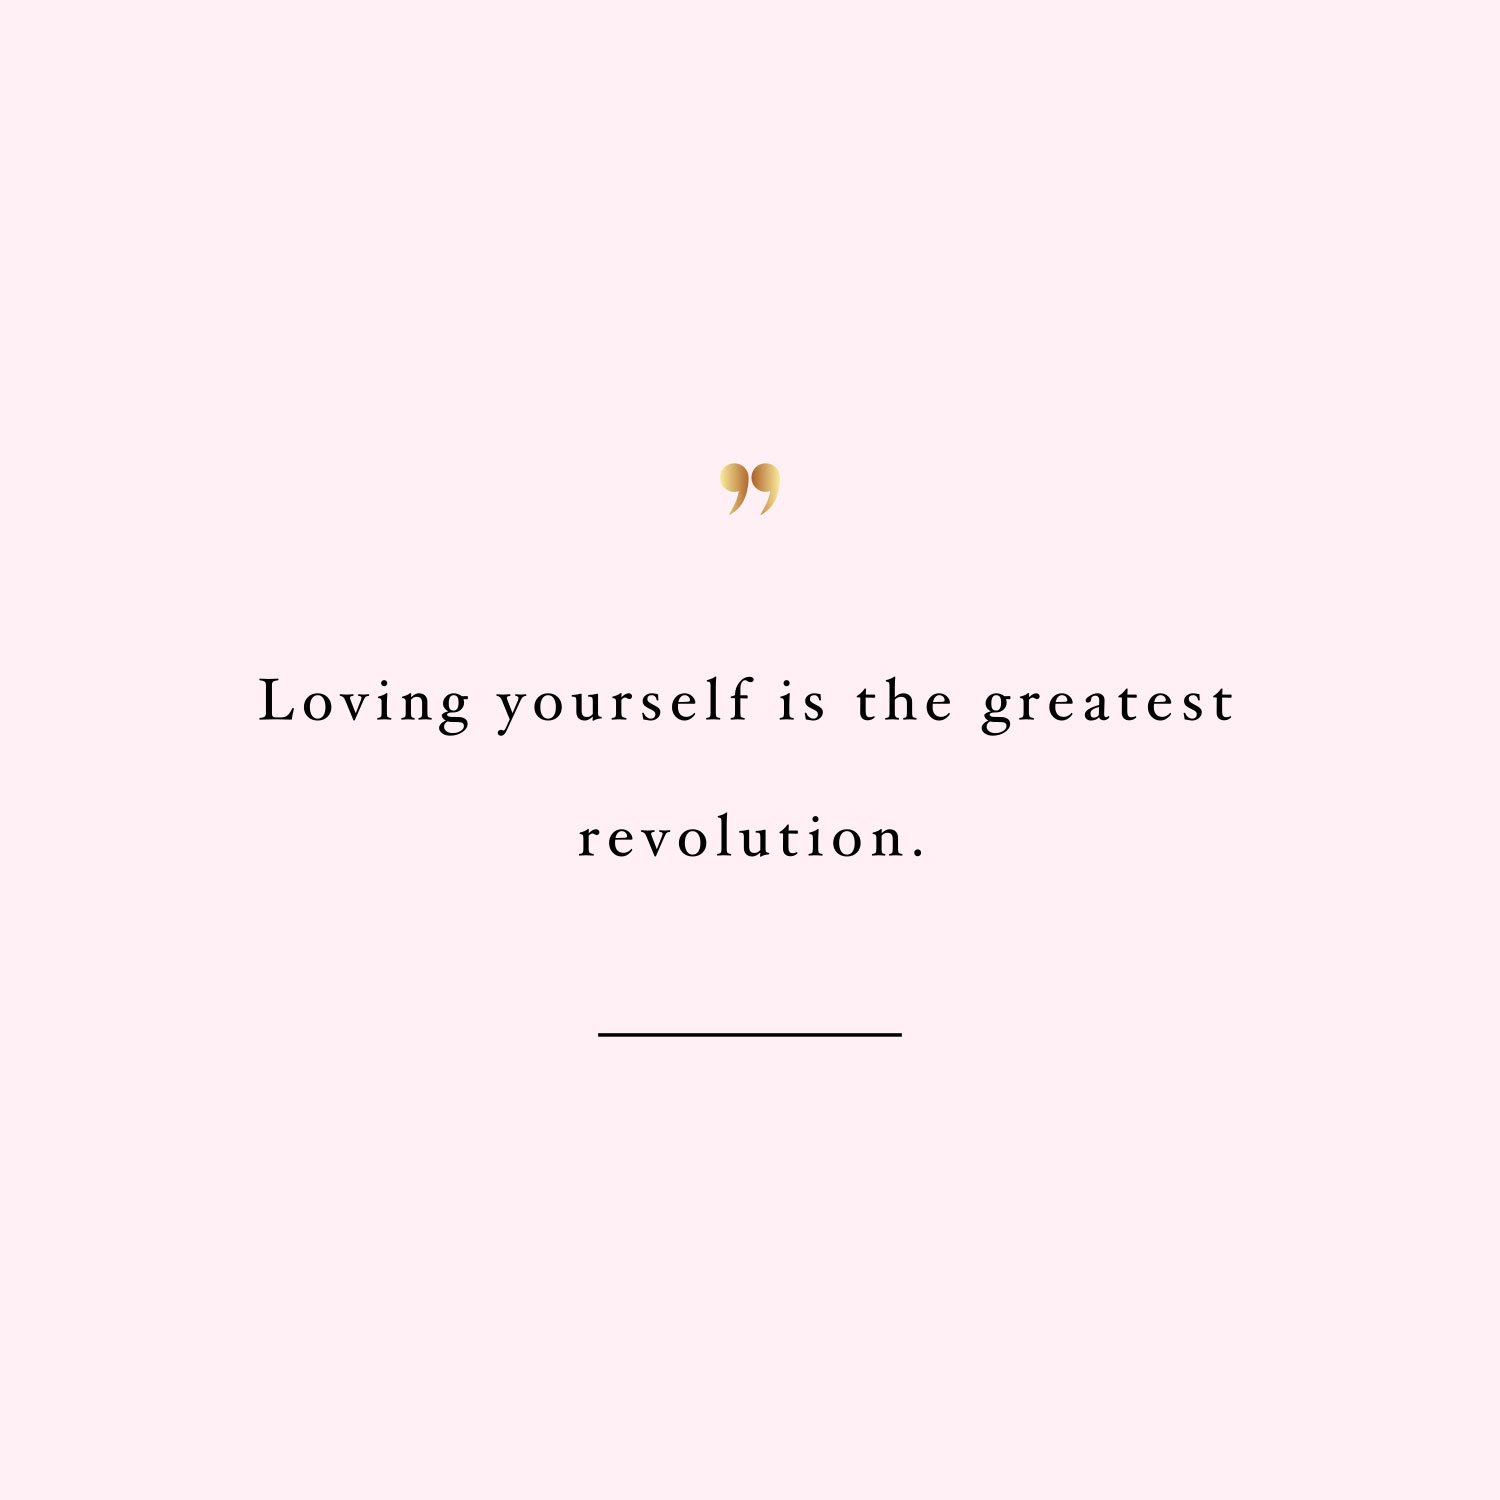 loving yourself revolution healthy lifestyle motivation